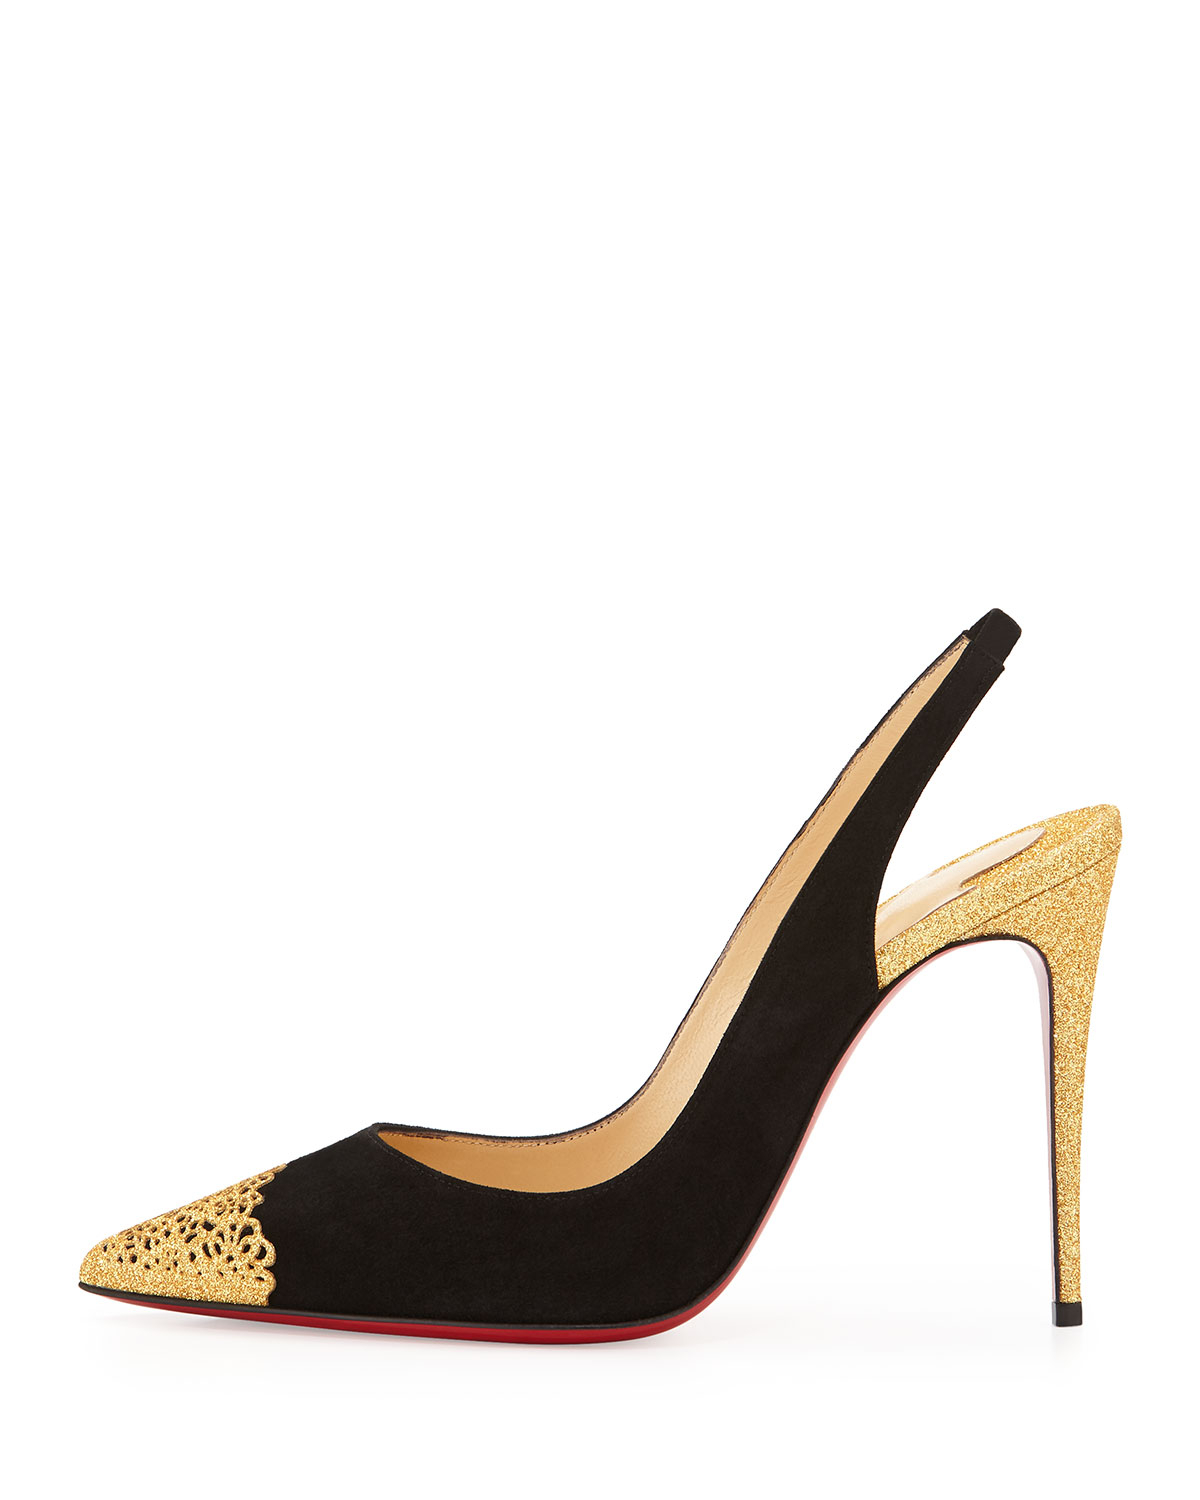 Christian louboutin Mayerling Slingback Sandals in Black | Lyst